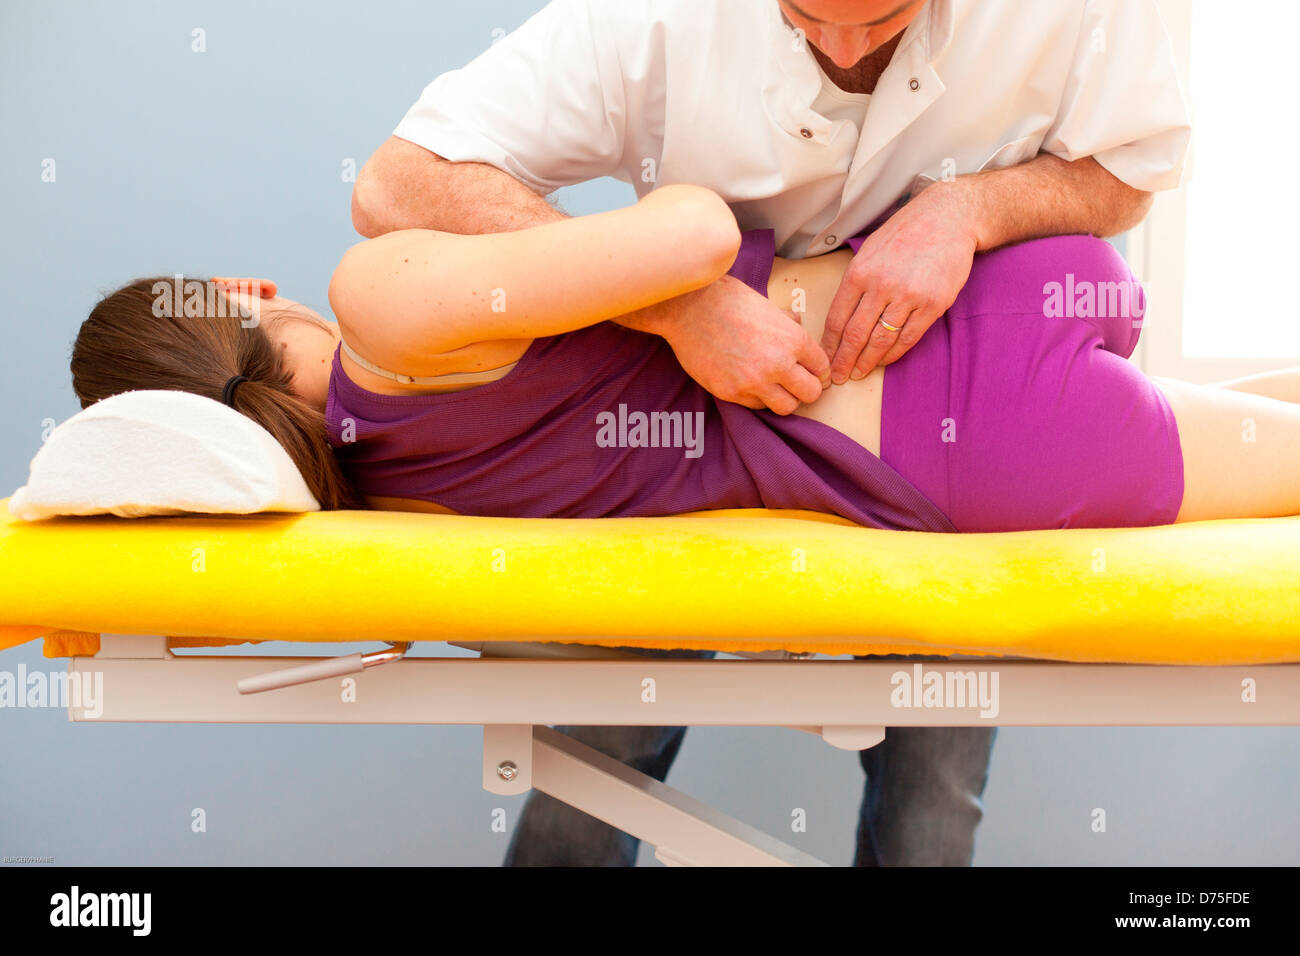 Structural osteopathy session on a woman with low back pain - Stock Image